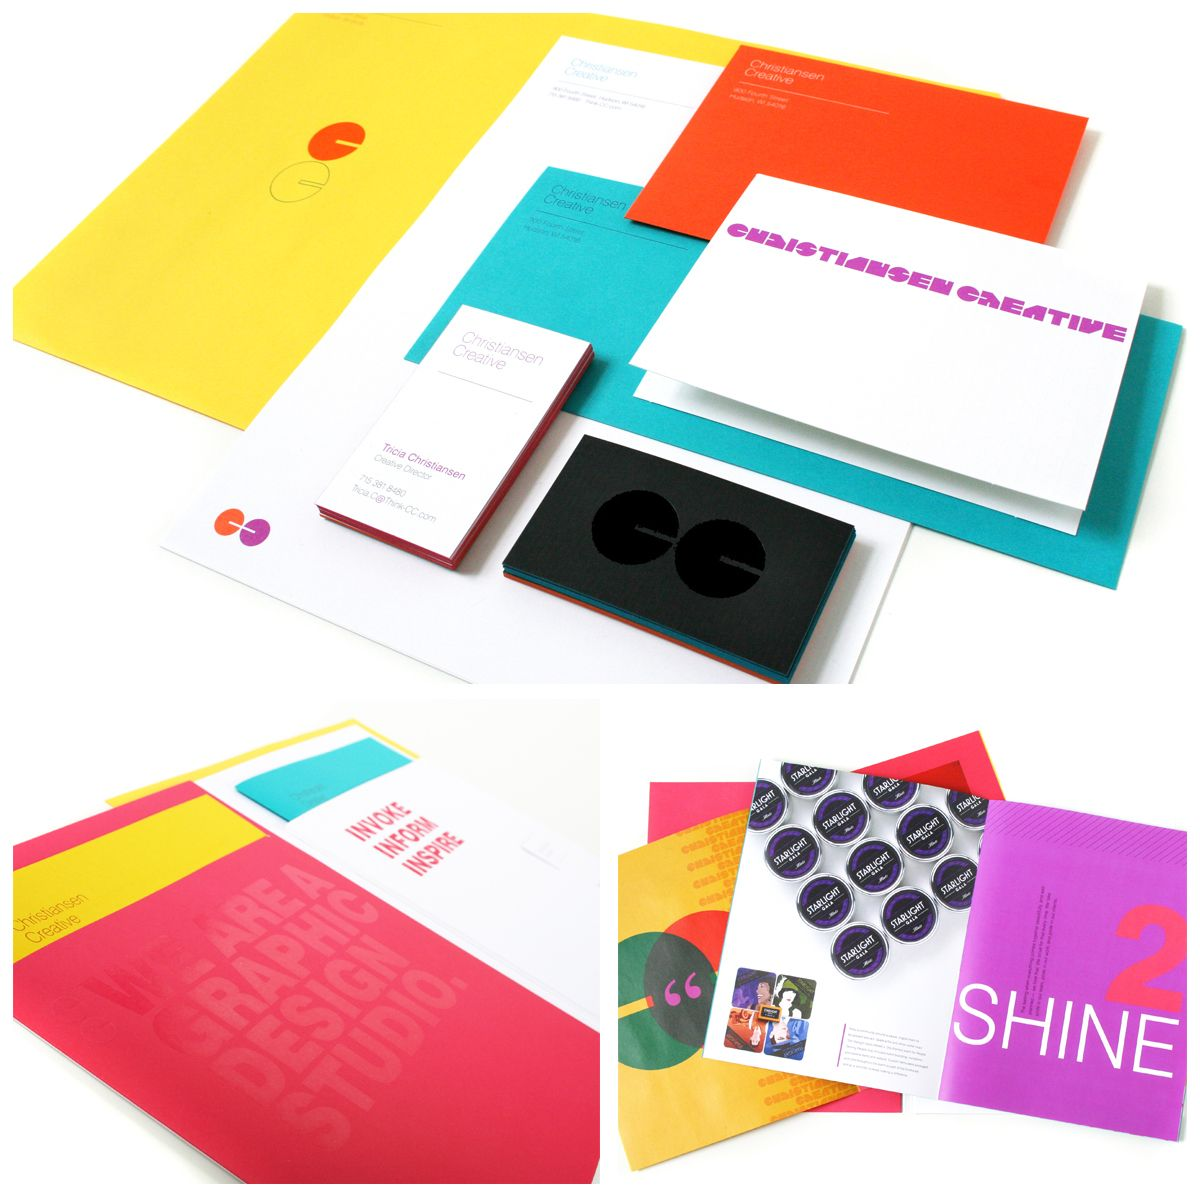 New brand identity materials for Christiansen Creative in